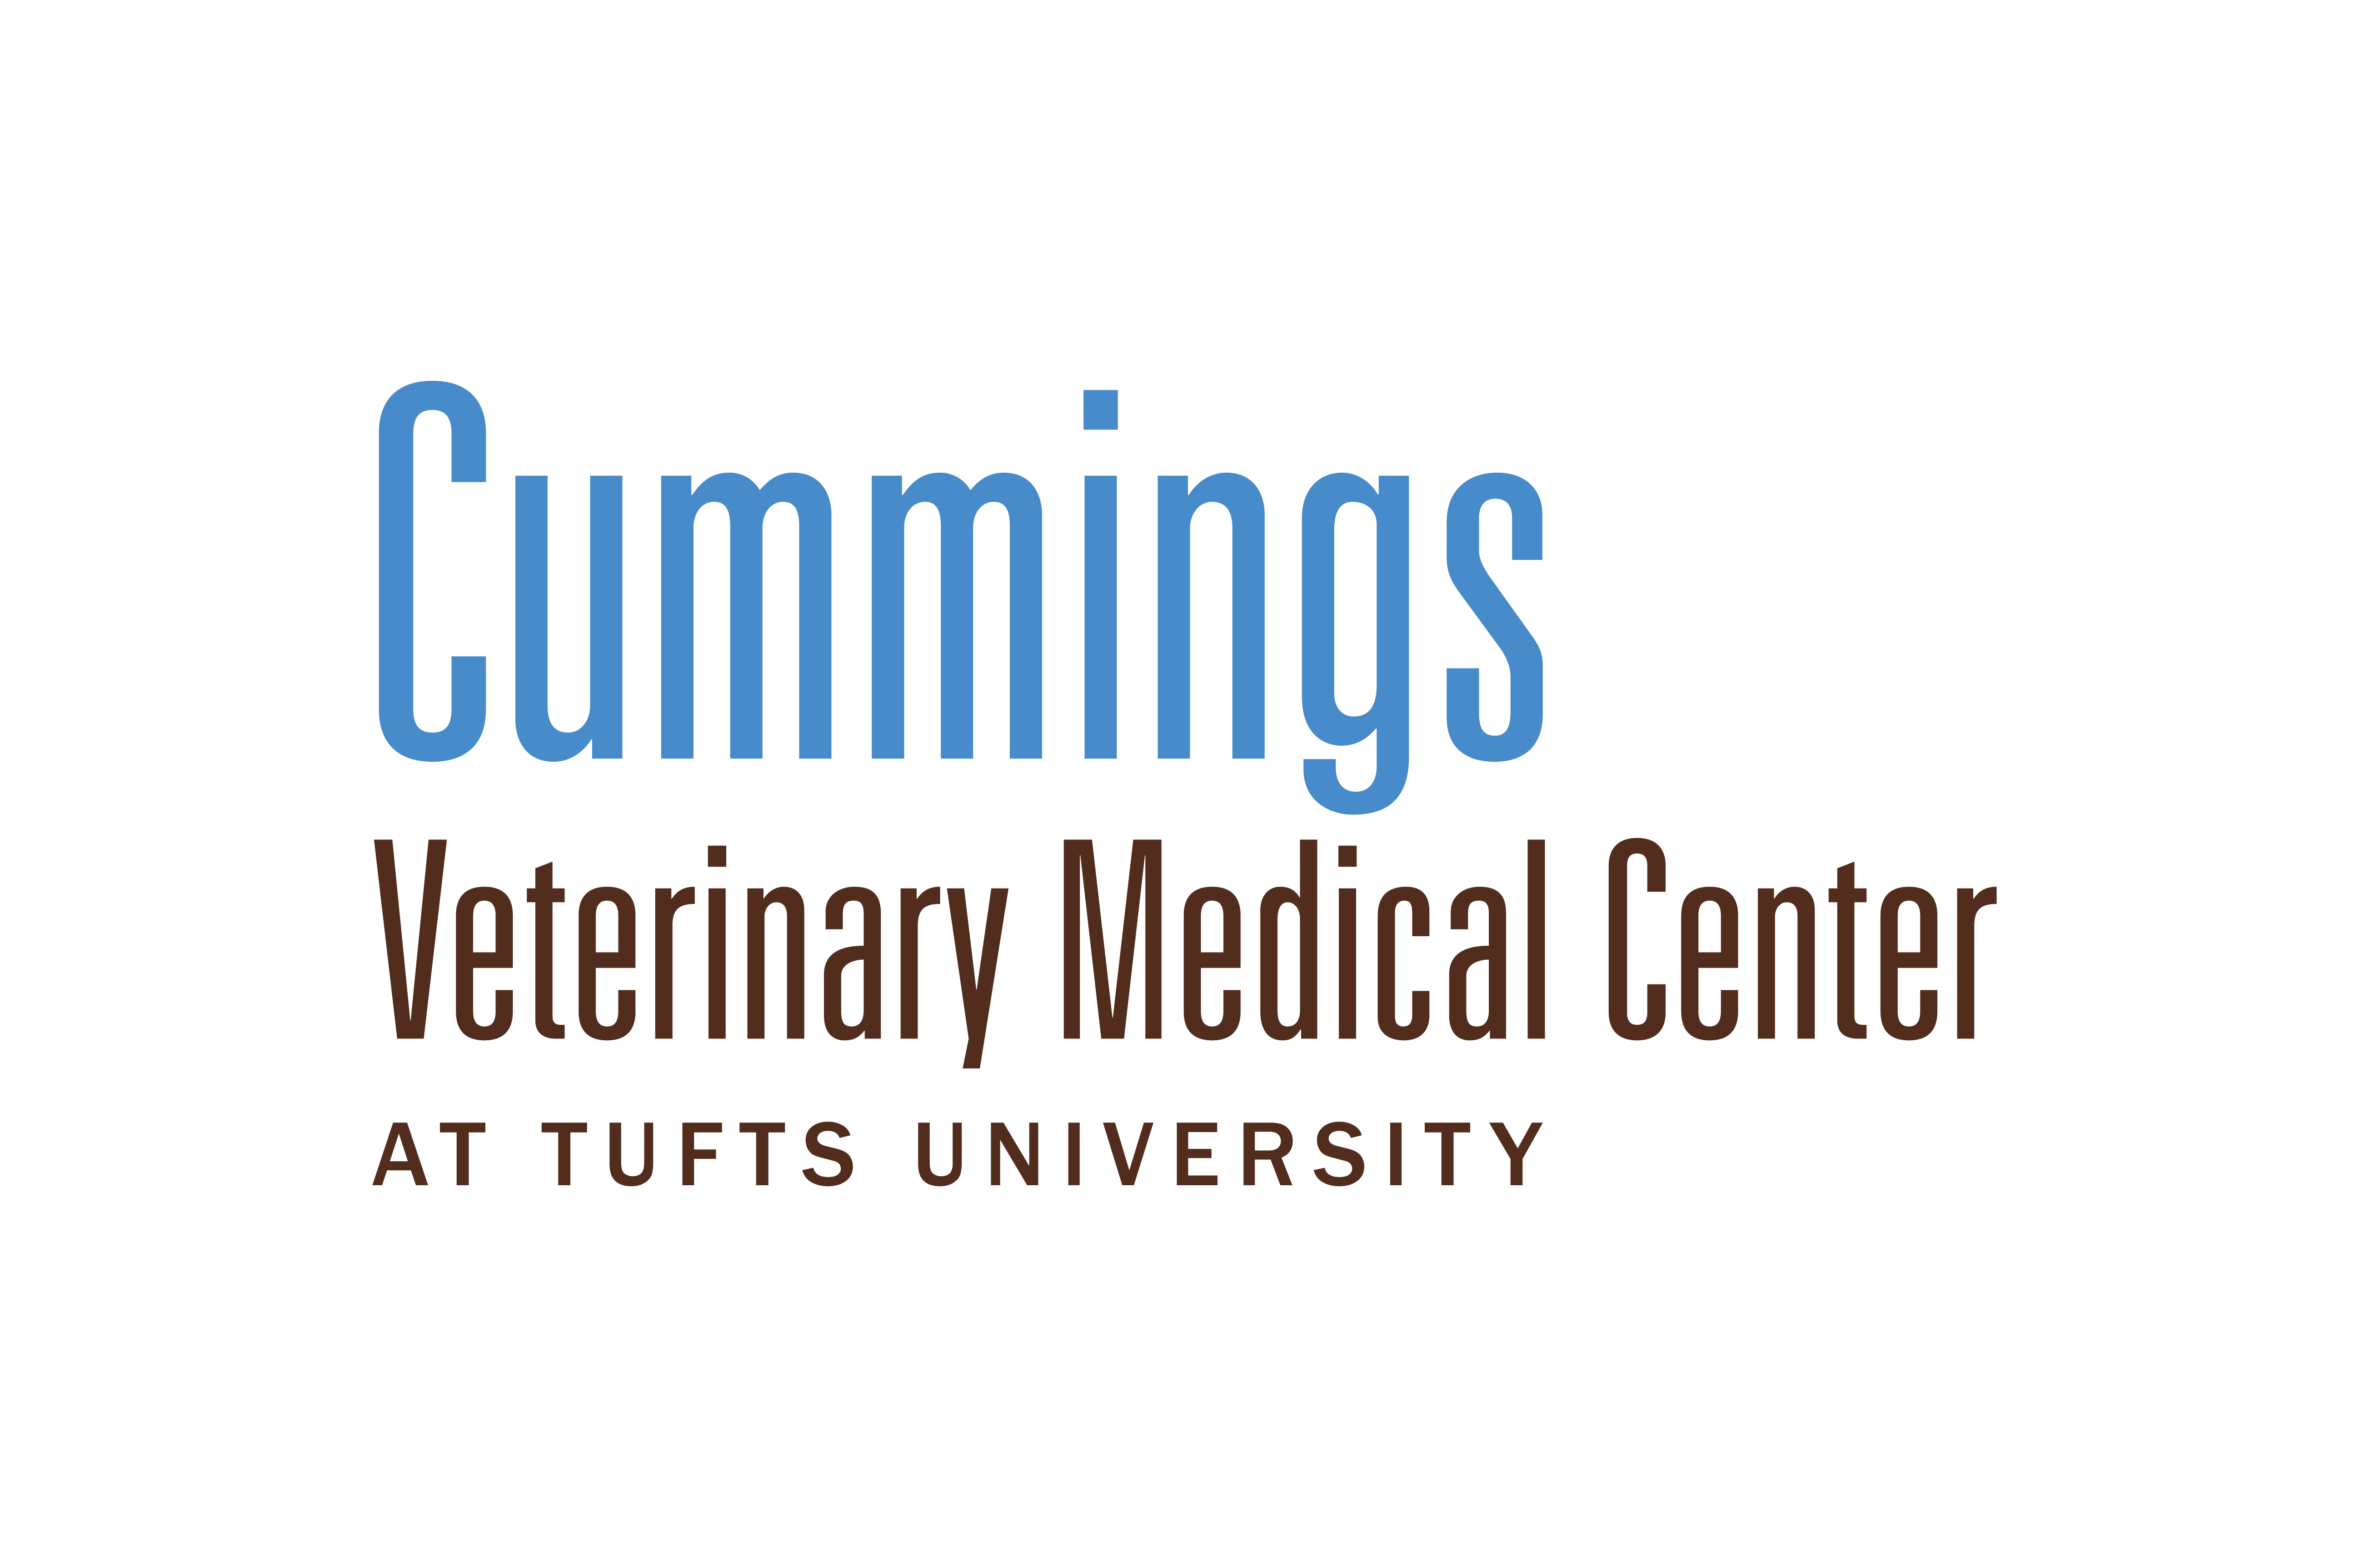 Cummings Veterinary Medical Center logo